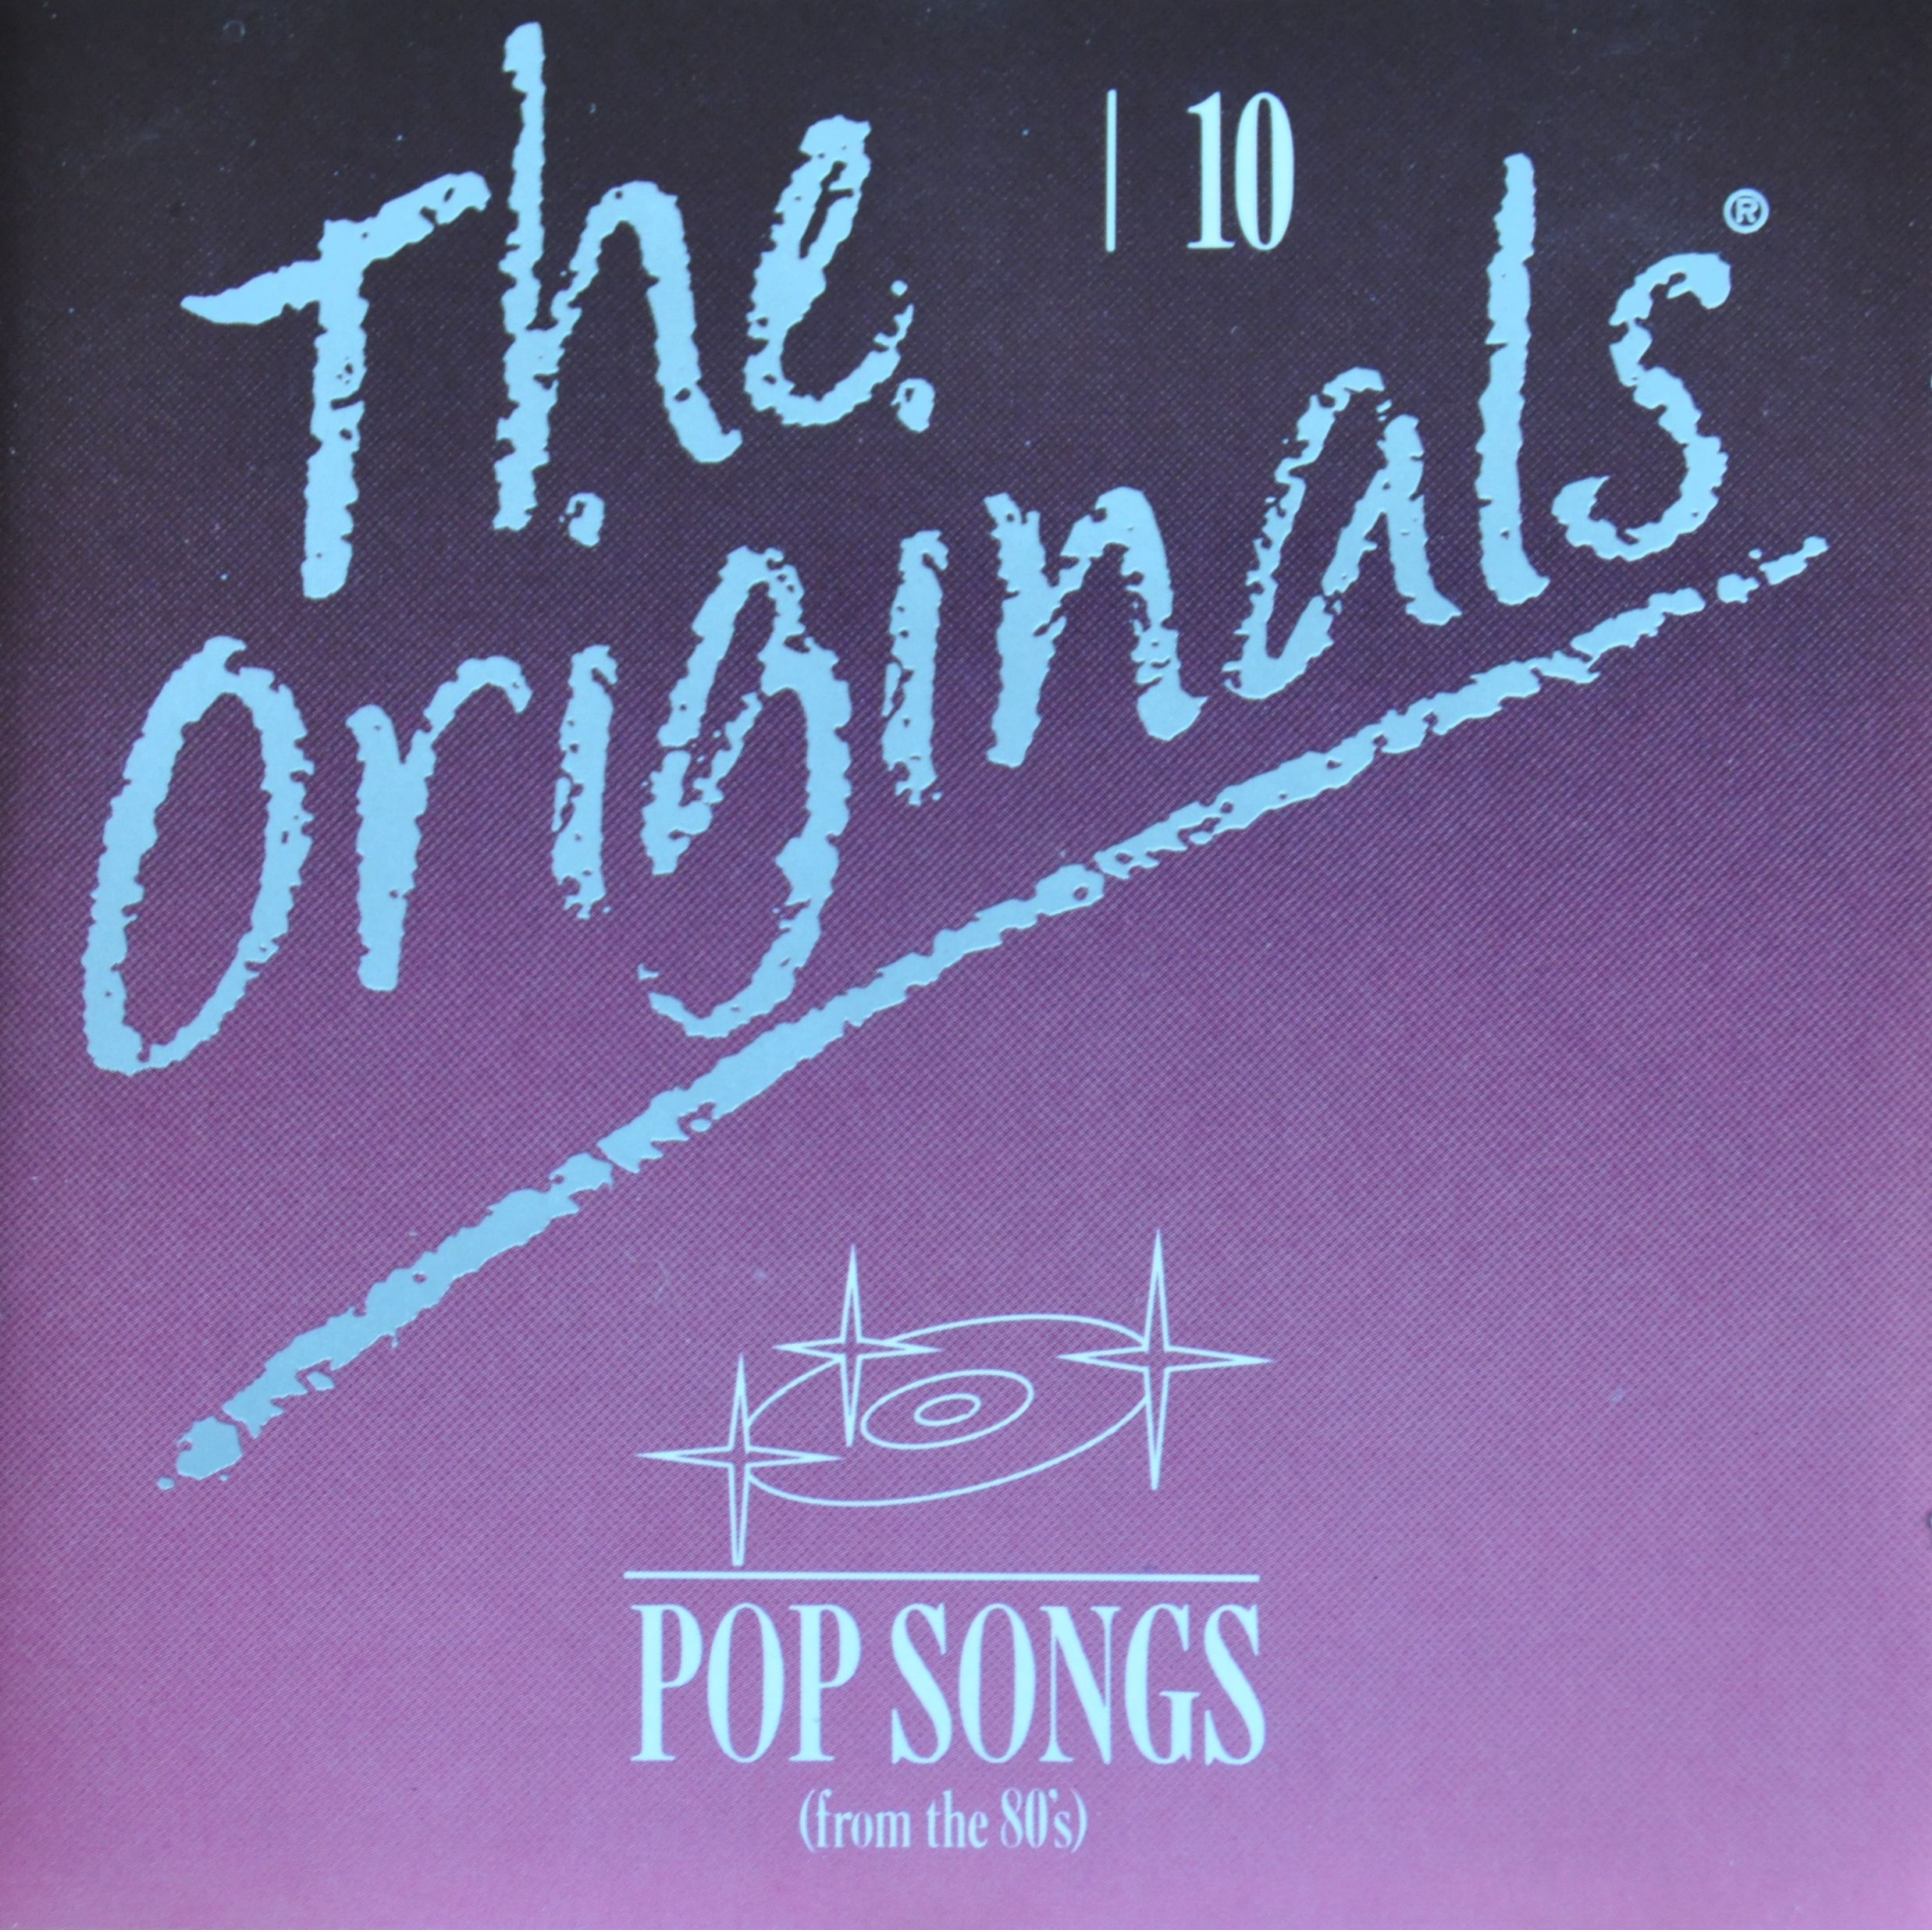 jaquettes2/The-Originals_10_Pop-Songs-from-the-80s.jpg